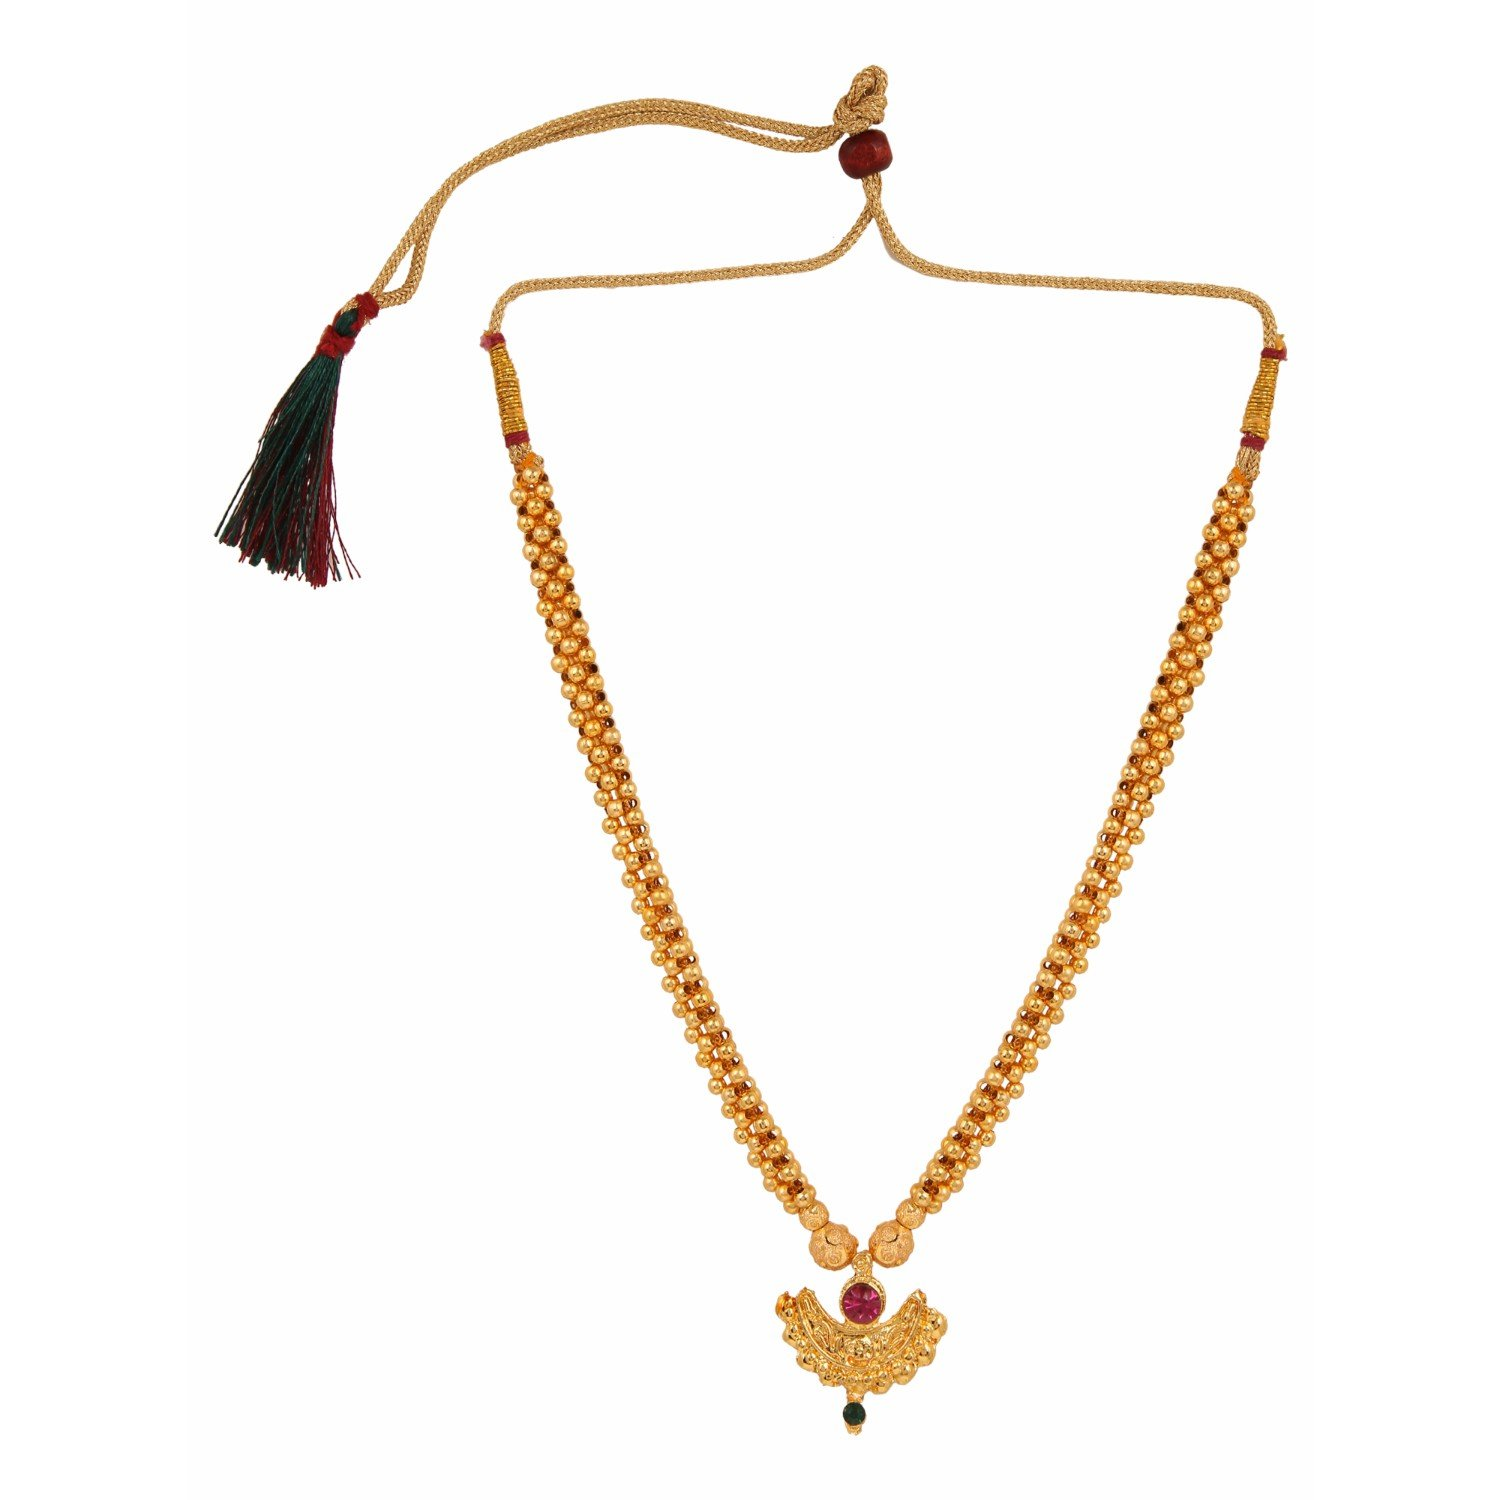 Efulgenz Indian Bollywood Traditional White Red Rhinestone Faux Ruby Pearl Designer Thusi Style Necklace in Antique 18K Gold Tone for Women and Girls (Style 3)